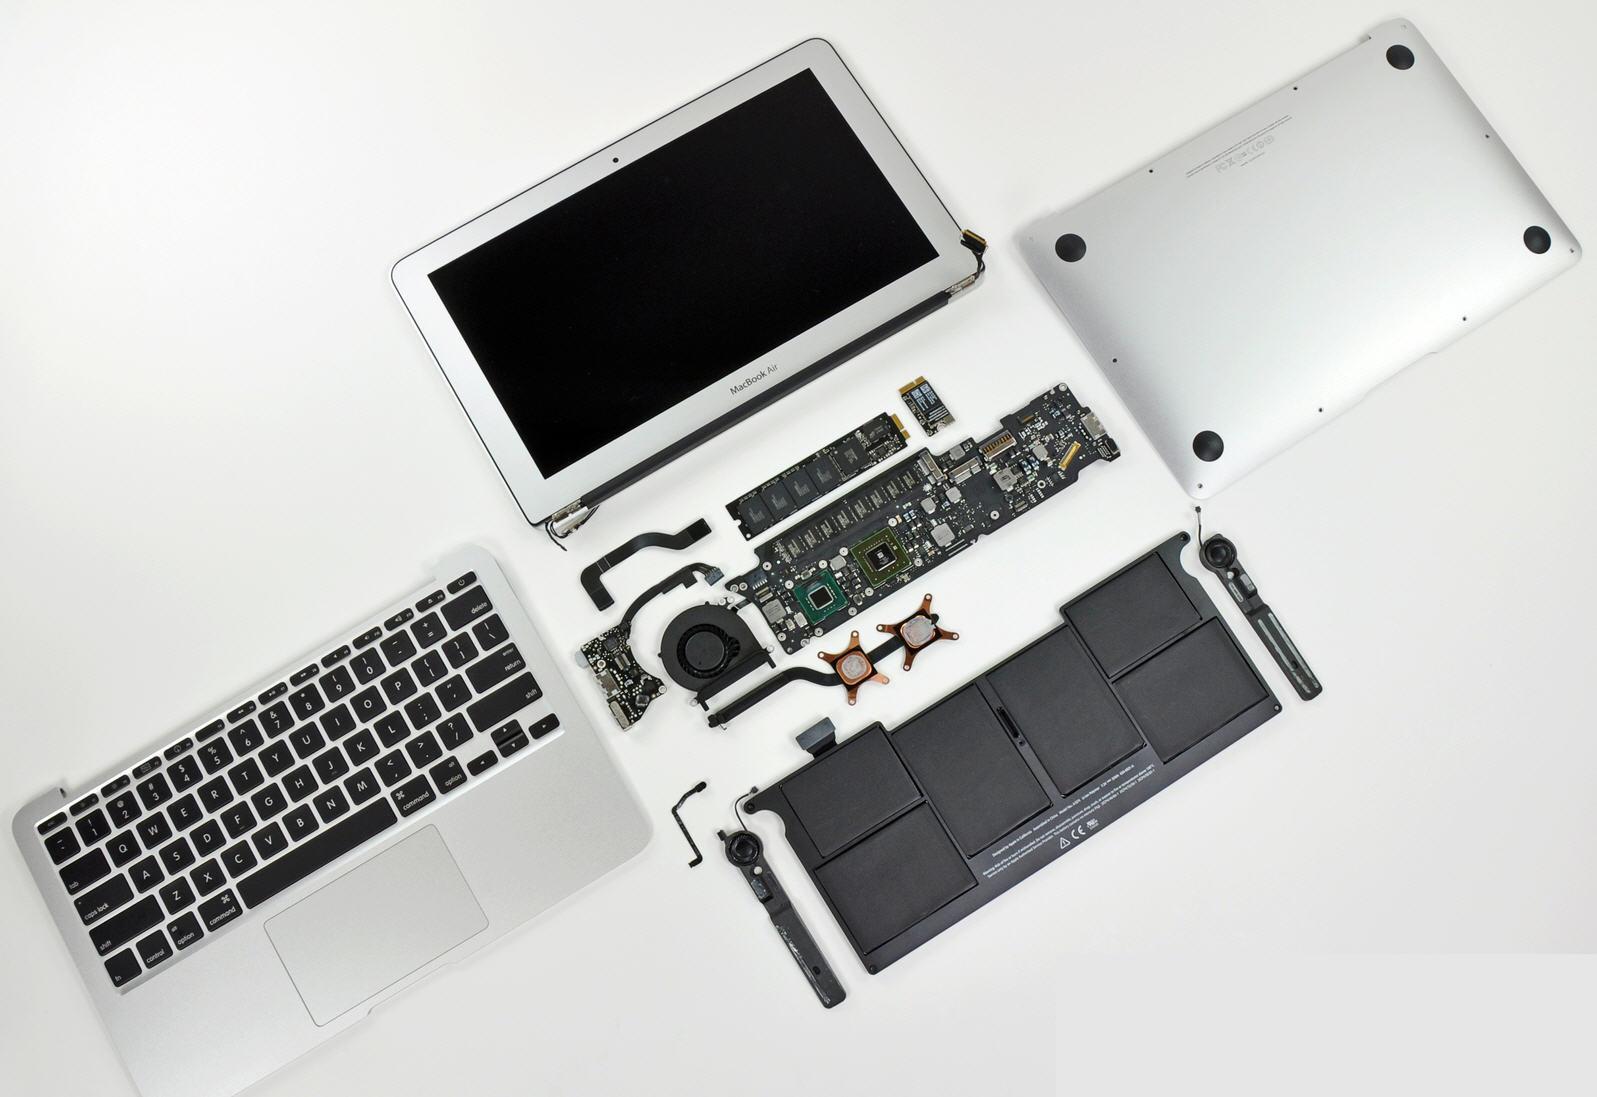 Recomendaciones para alargar la vida de la batería Macbook Pro, Macbook Air